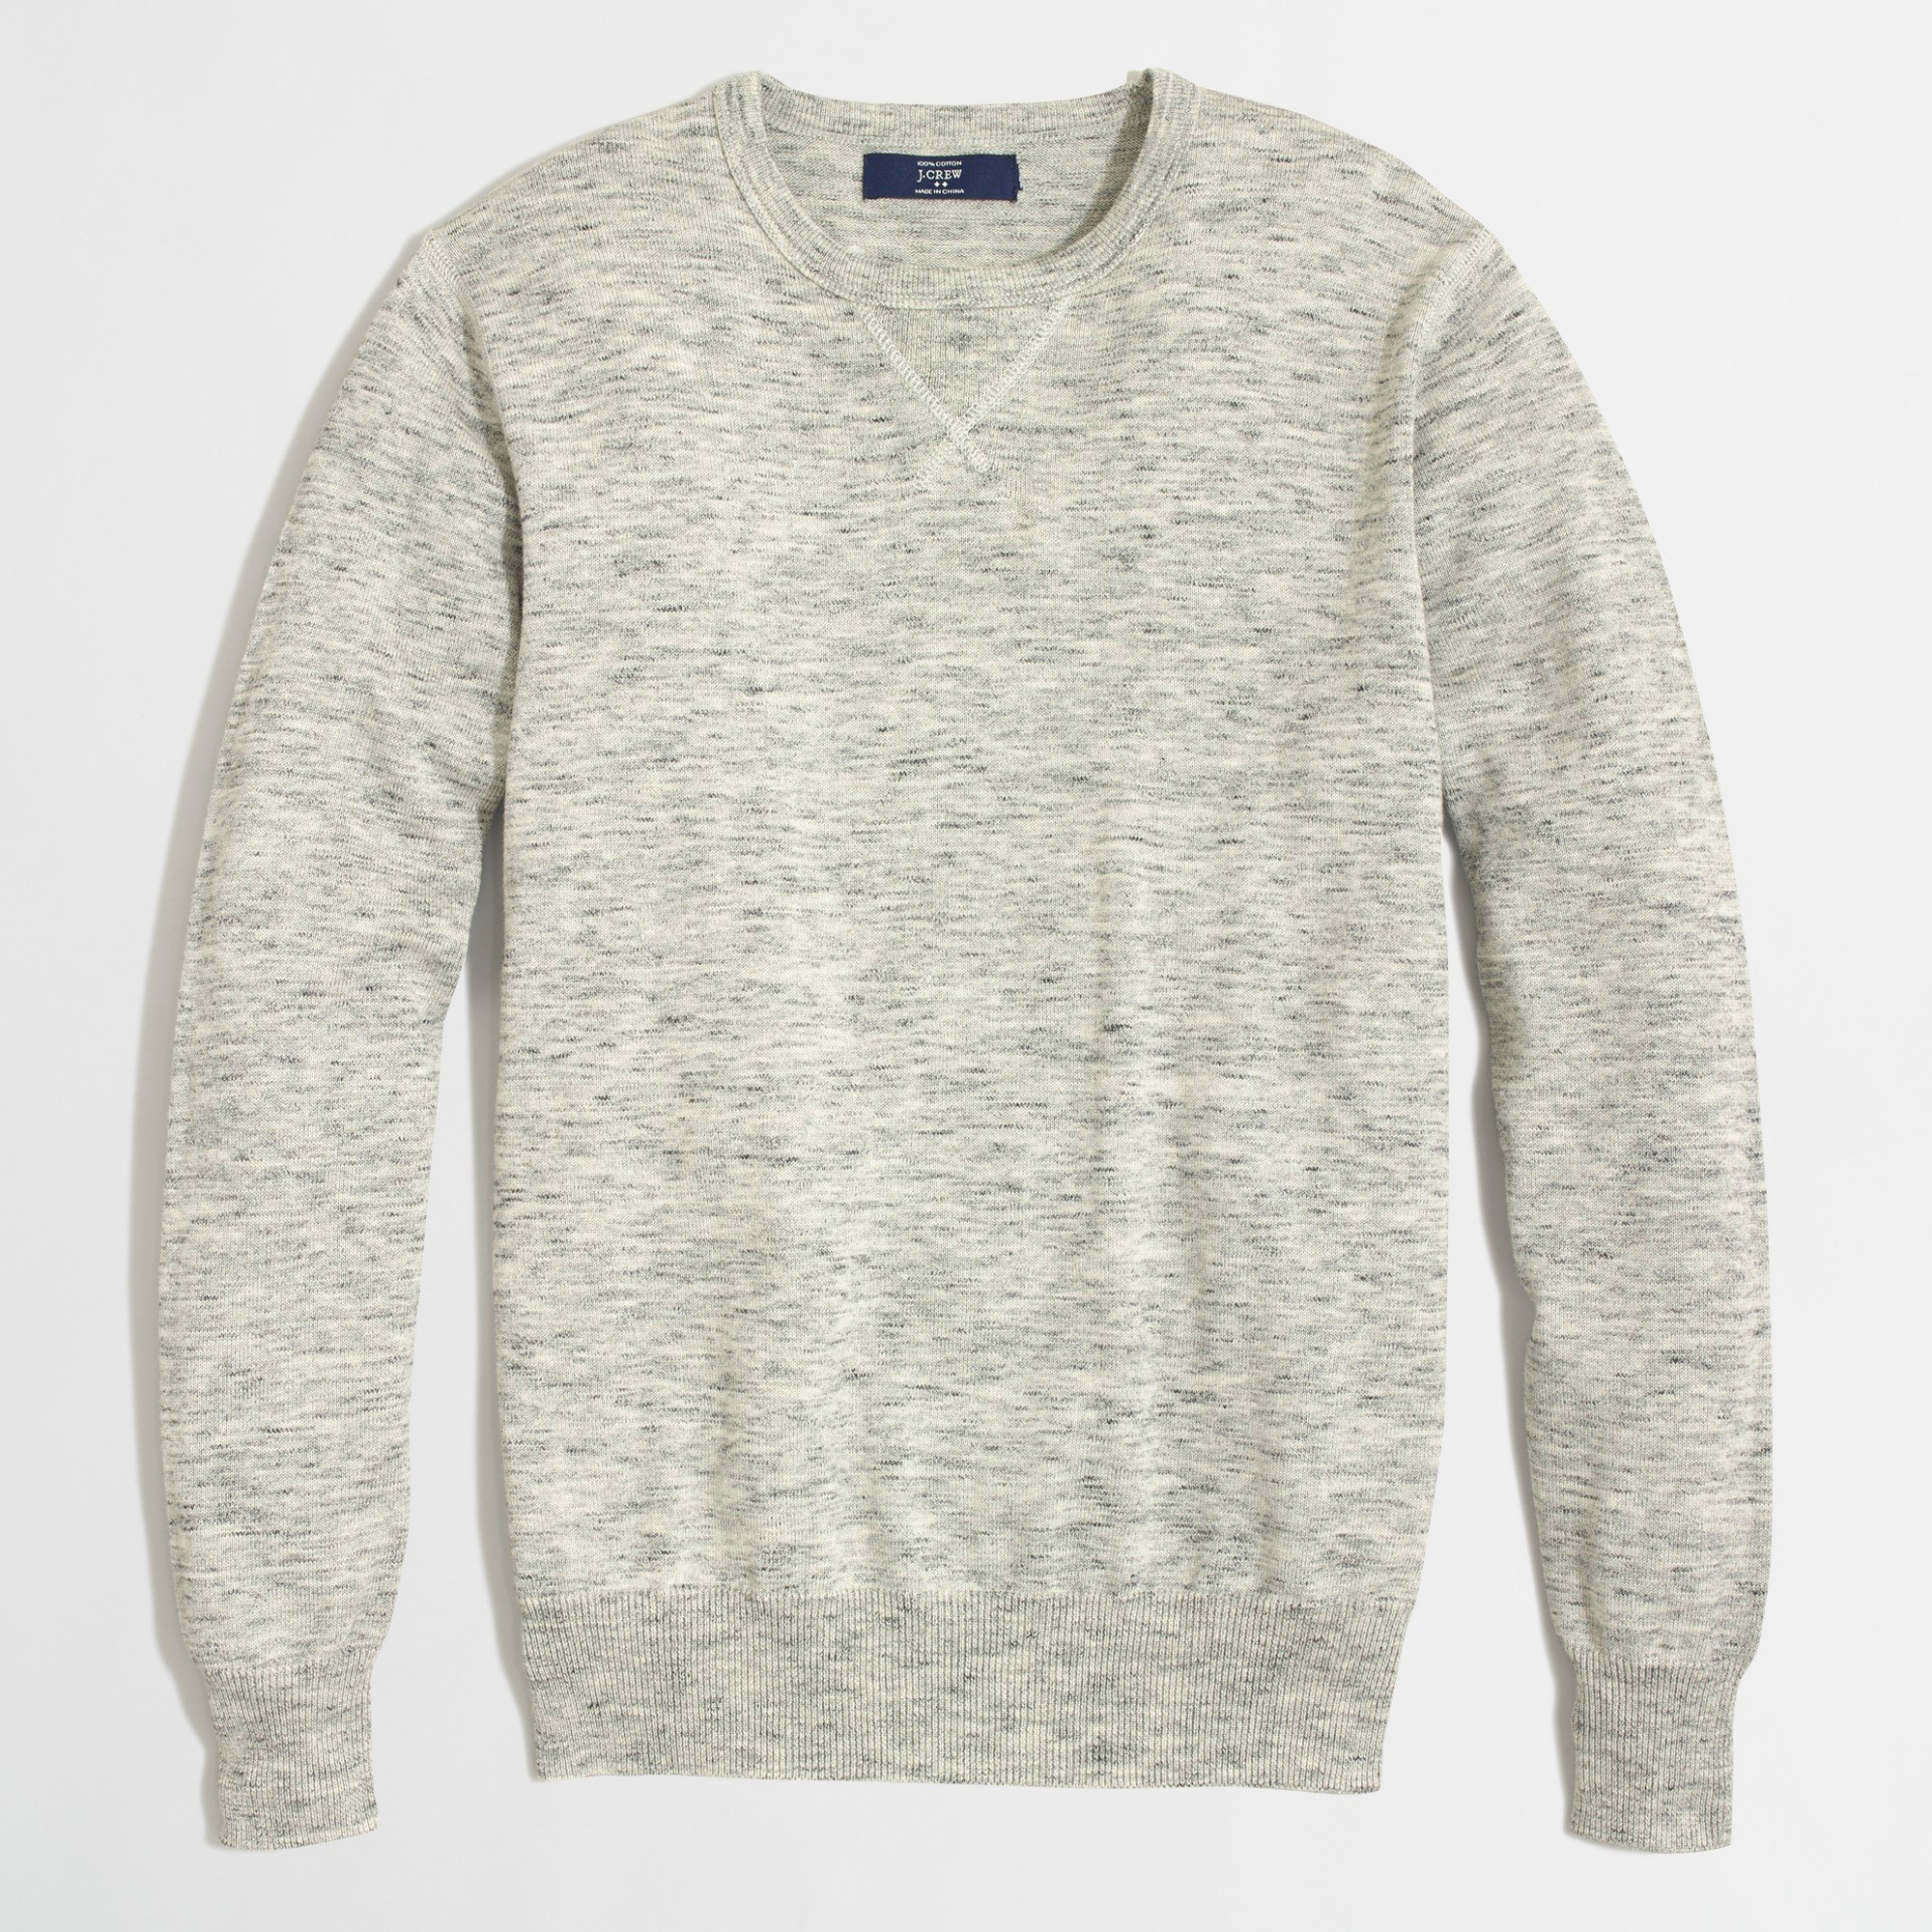 Heathered sweatshirt sweater - Men's Sweaters | J.Crew Factory